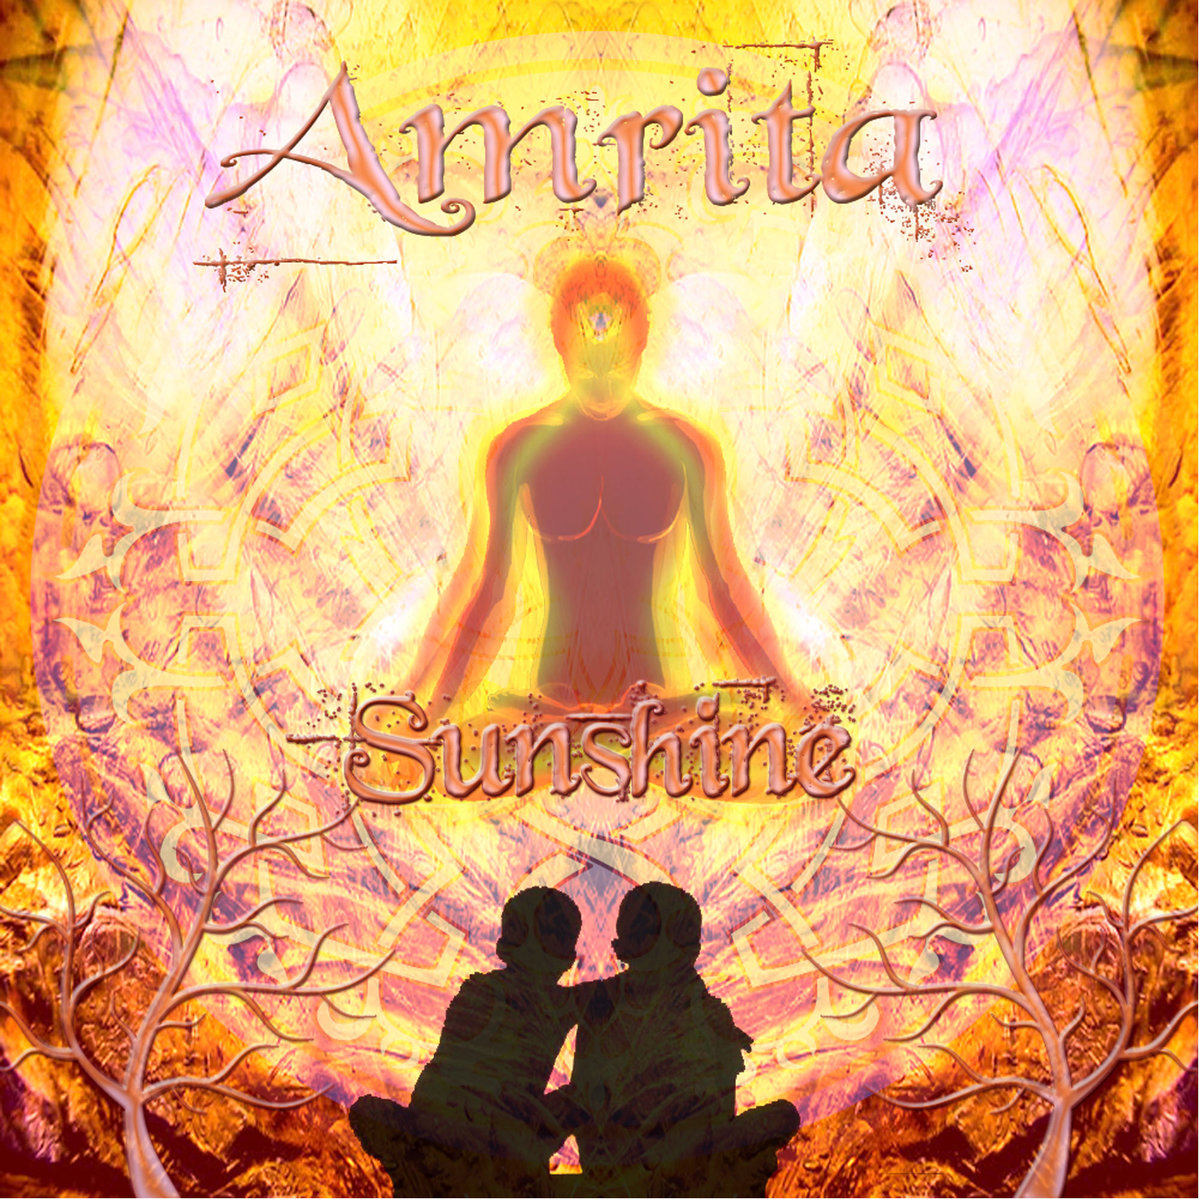 Amrita - Sunshine in Scotland @ 'Sunshine' album (ambient, electronic)